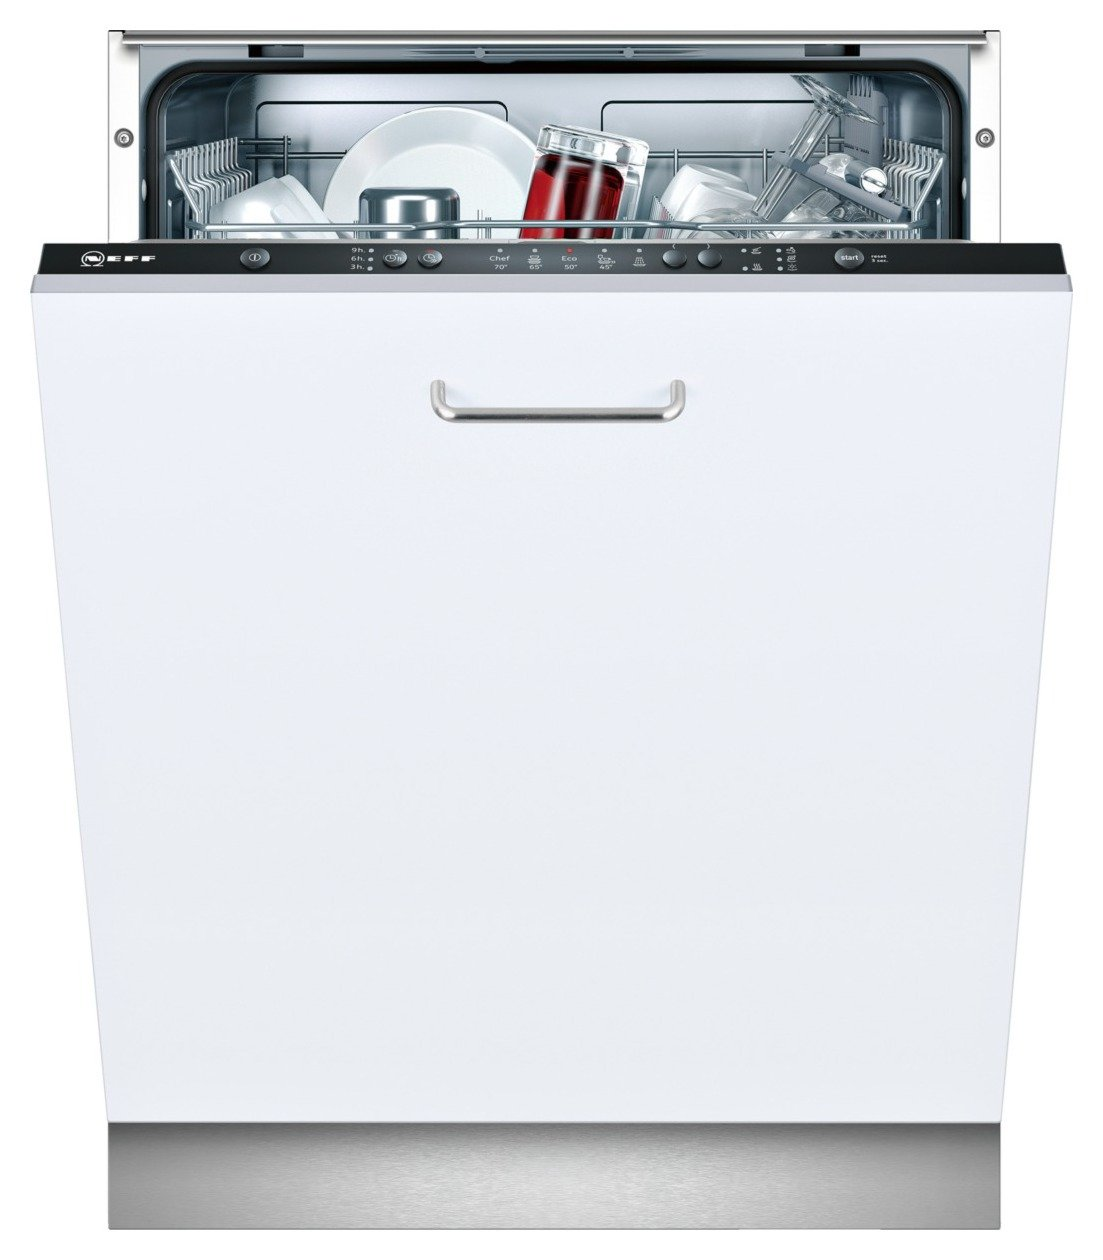 Neff S511A50X1G Integrated Dishwasher - White